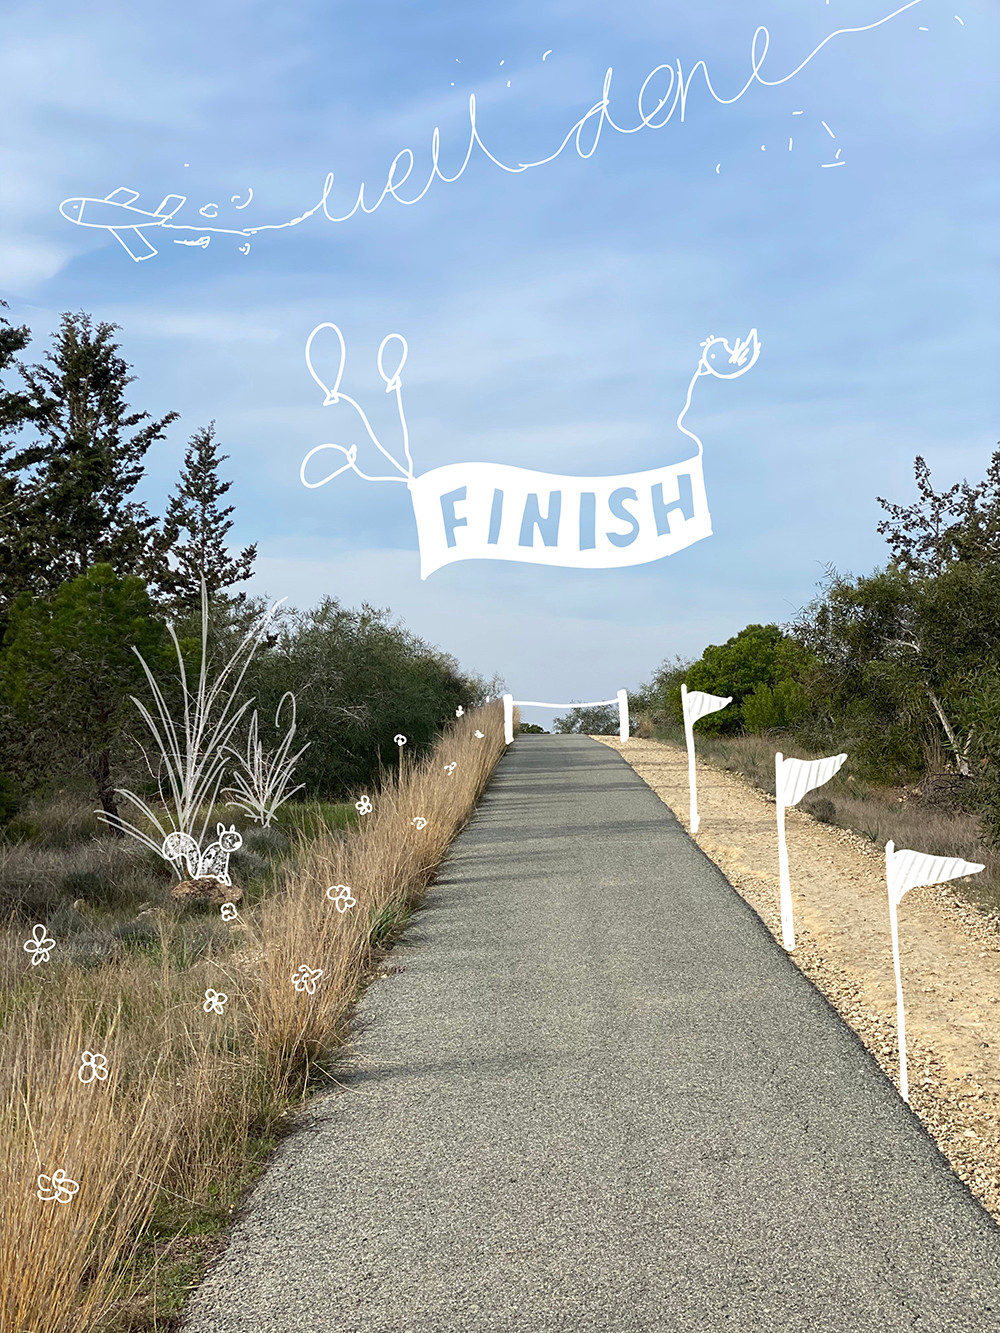 A photo of an uphill path. Doodles are drawn to make it look like the finish line of a competition.